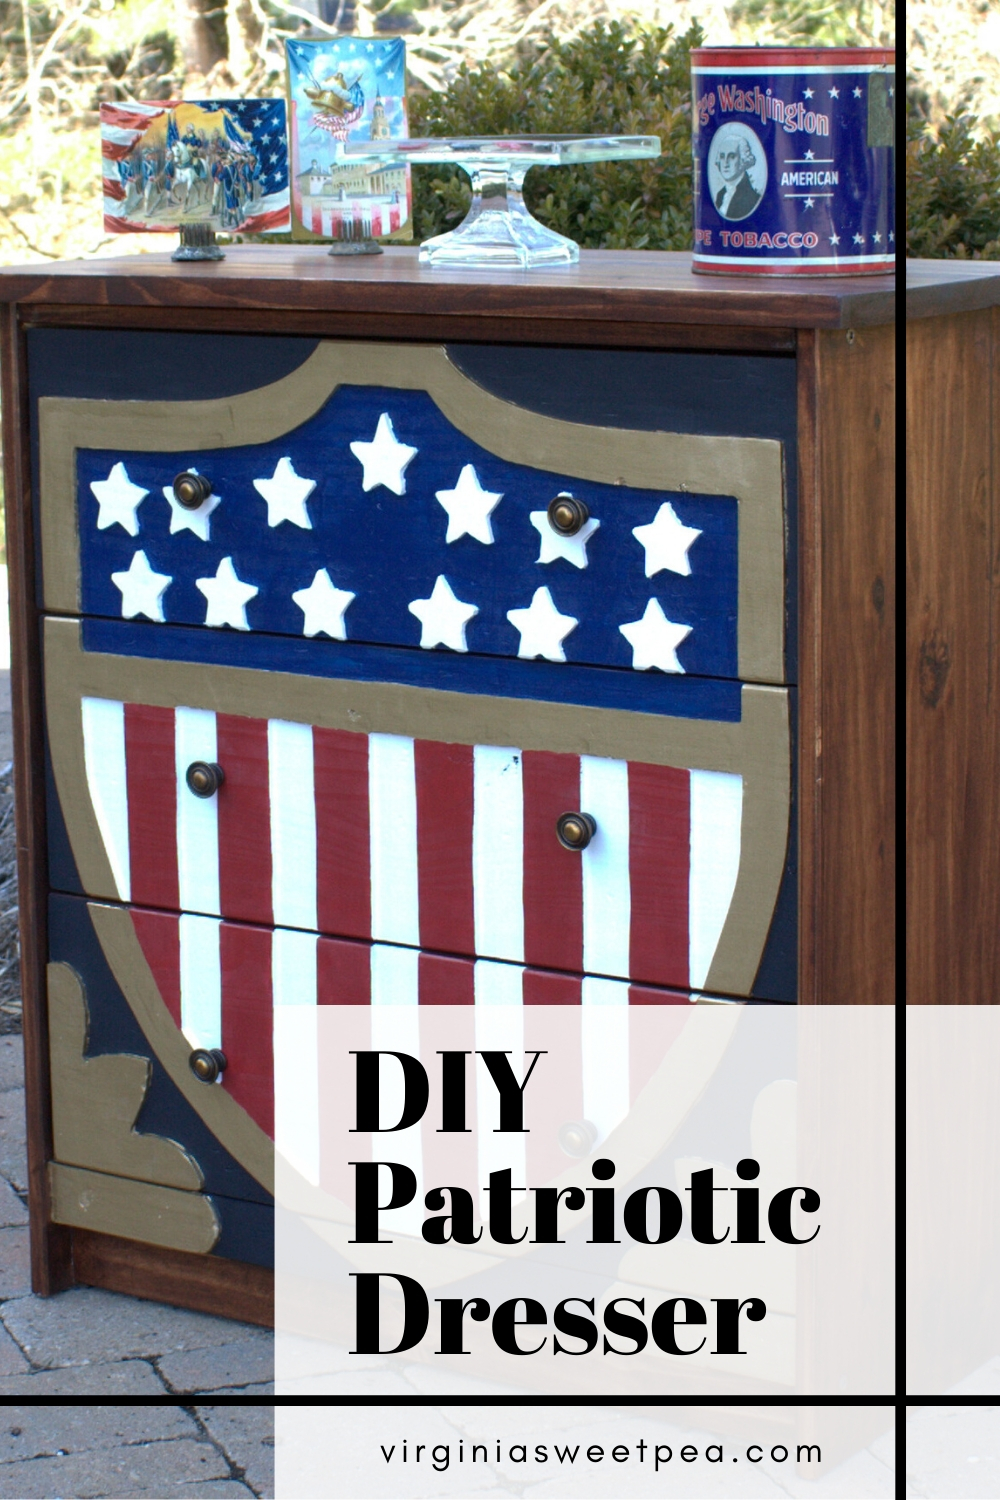 DIY Patriotic Dresser - A plain Jane Ikea Rast chest is transformed into a patriotic dresser by adding an American flag shield modeled after a gate seen at a museum.  This $39.99 chest now looks like a million bucks!  #ikearast #ikearastchest #ikeahack #patrioticdresser #chestmakeover  via @spaula